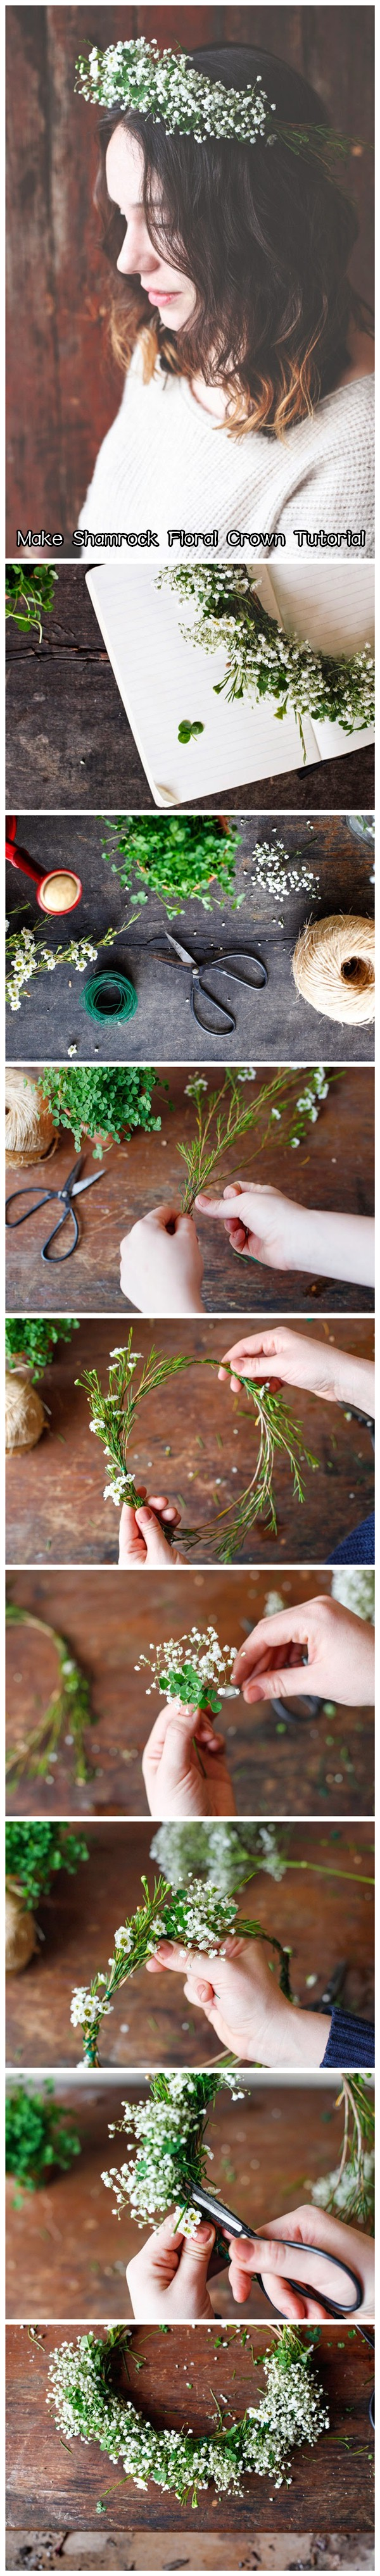 Make Shamrock Floral Crown Tutorial